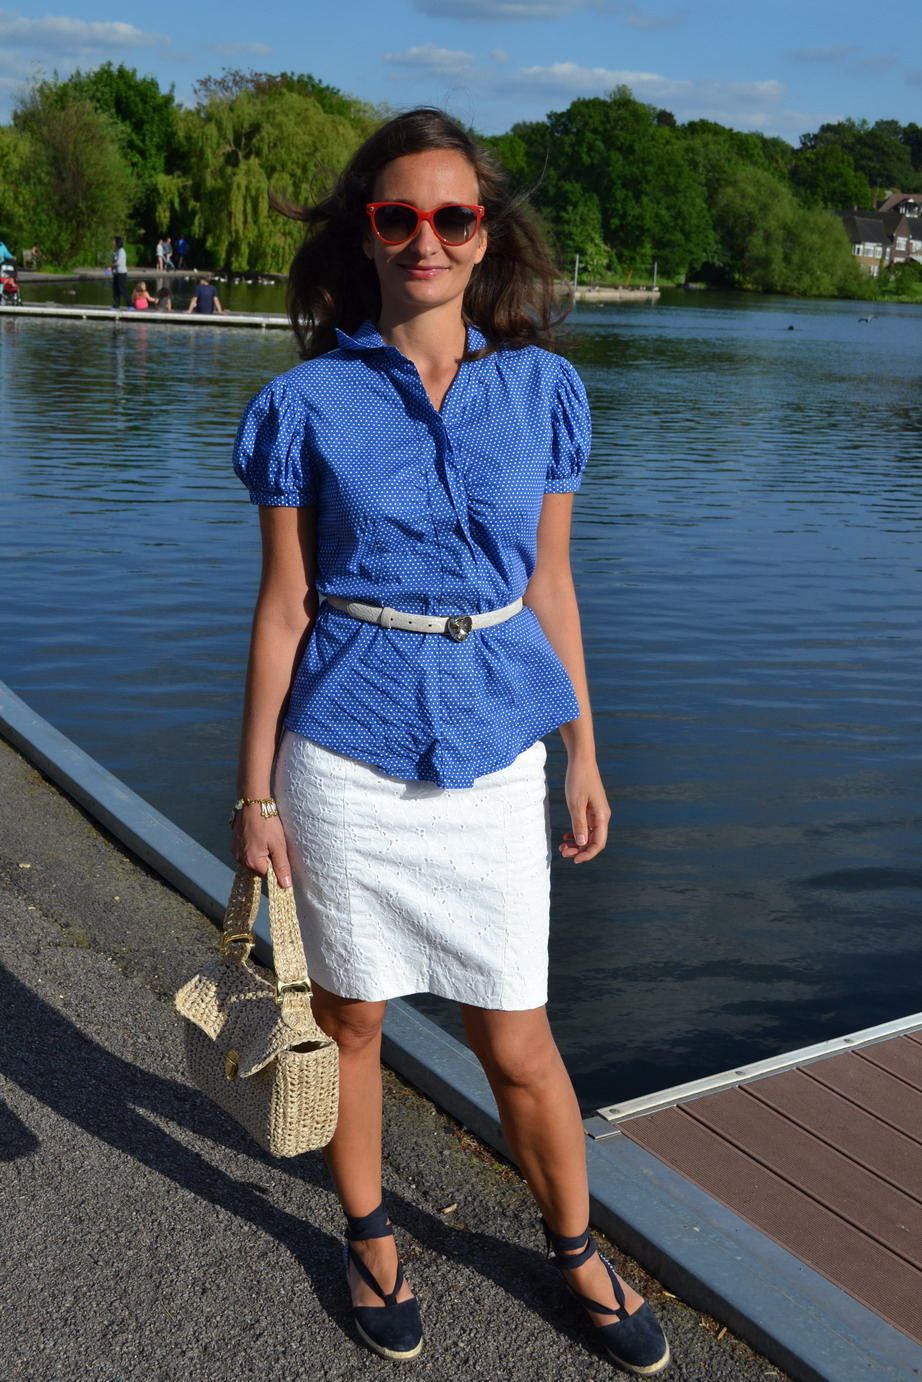 French weeks, blue white and red outfit